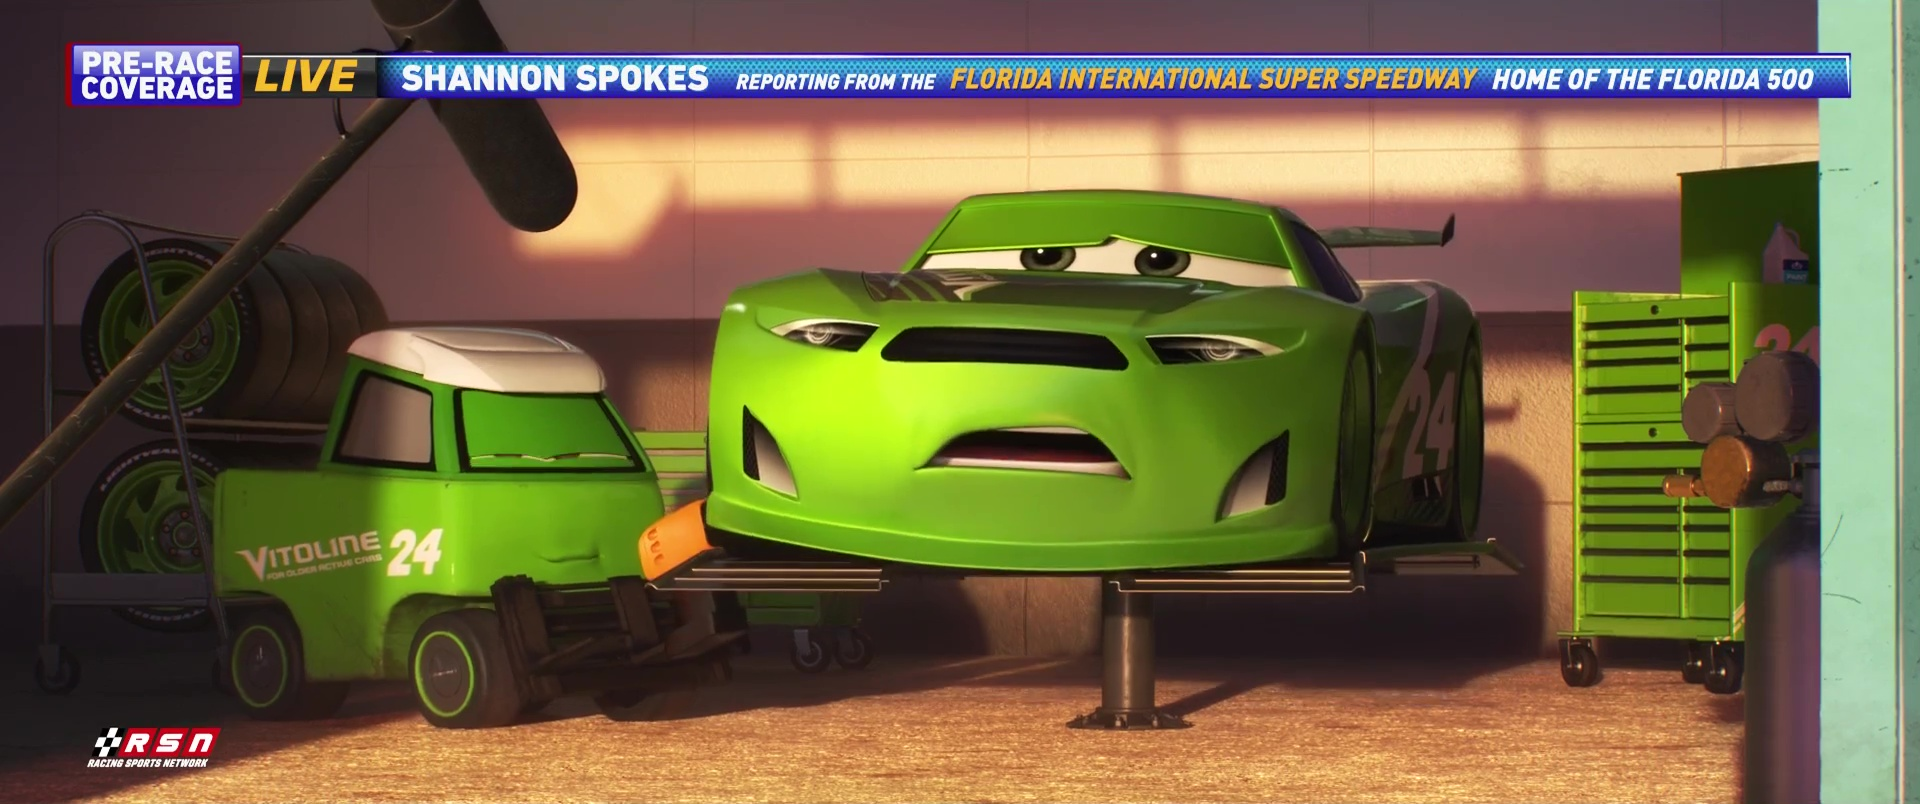 chase racelott personnage character disney pixar cars 3